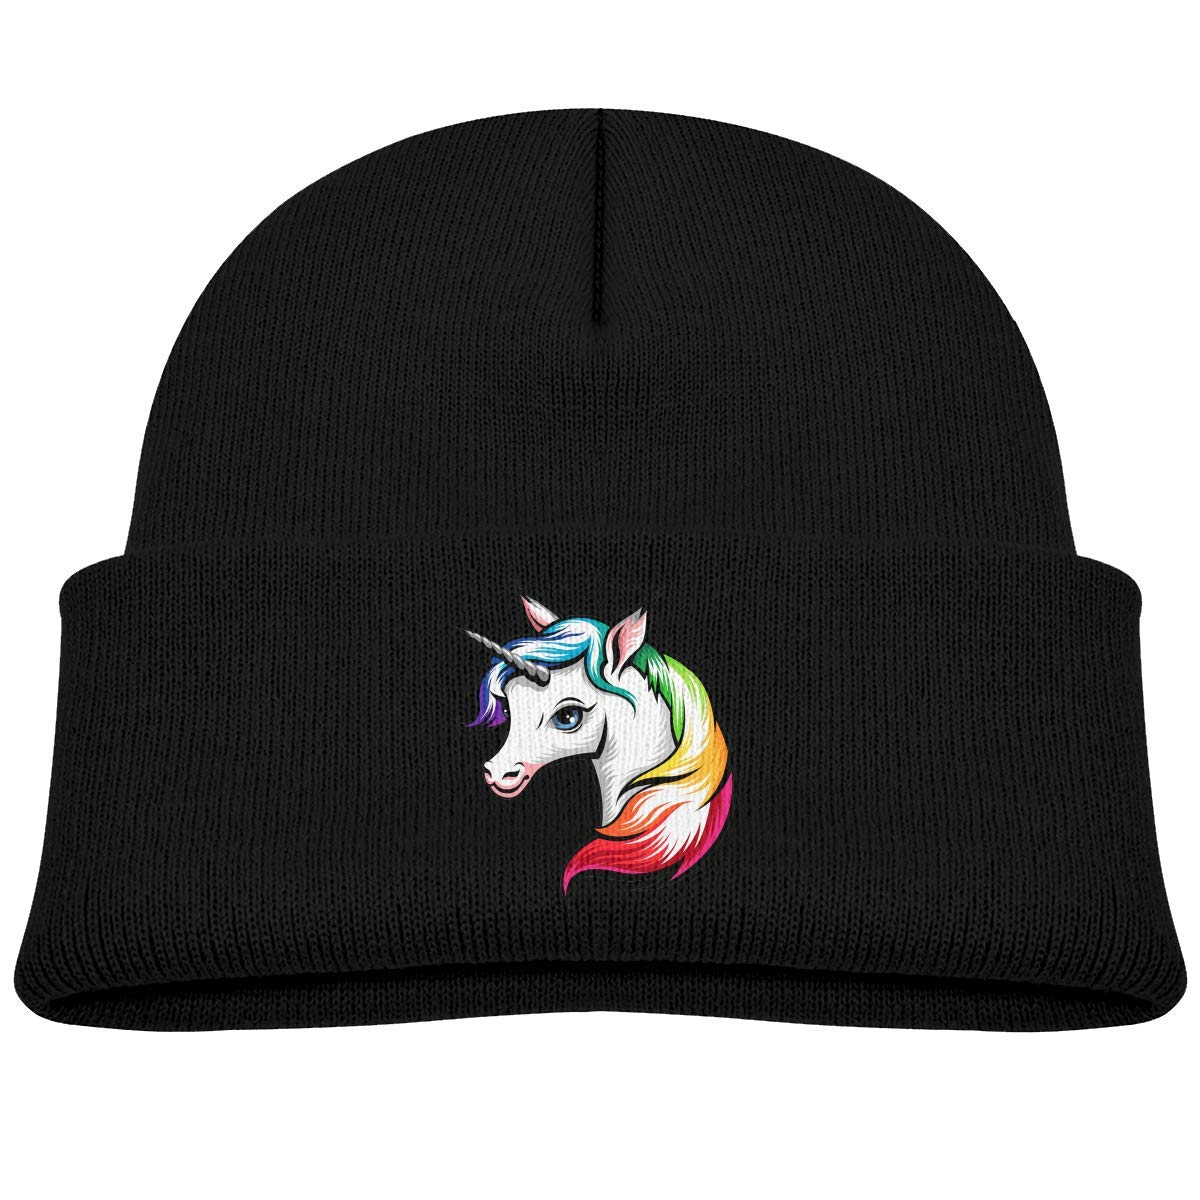 307bc53364c Amazon.com  Kids Knitted Beanies Hat I m Magical Rainbow Unicorn Winter Hat  Knitted Skull Cap for Boys Girls Black  Clothing